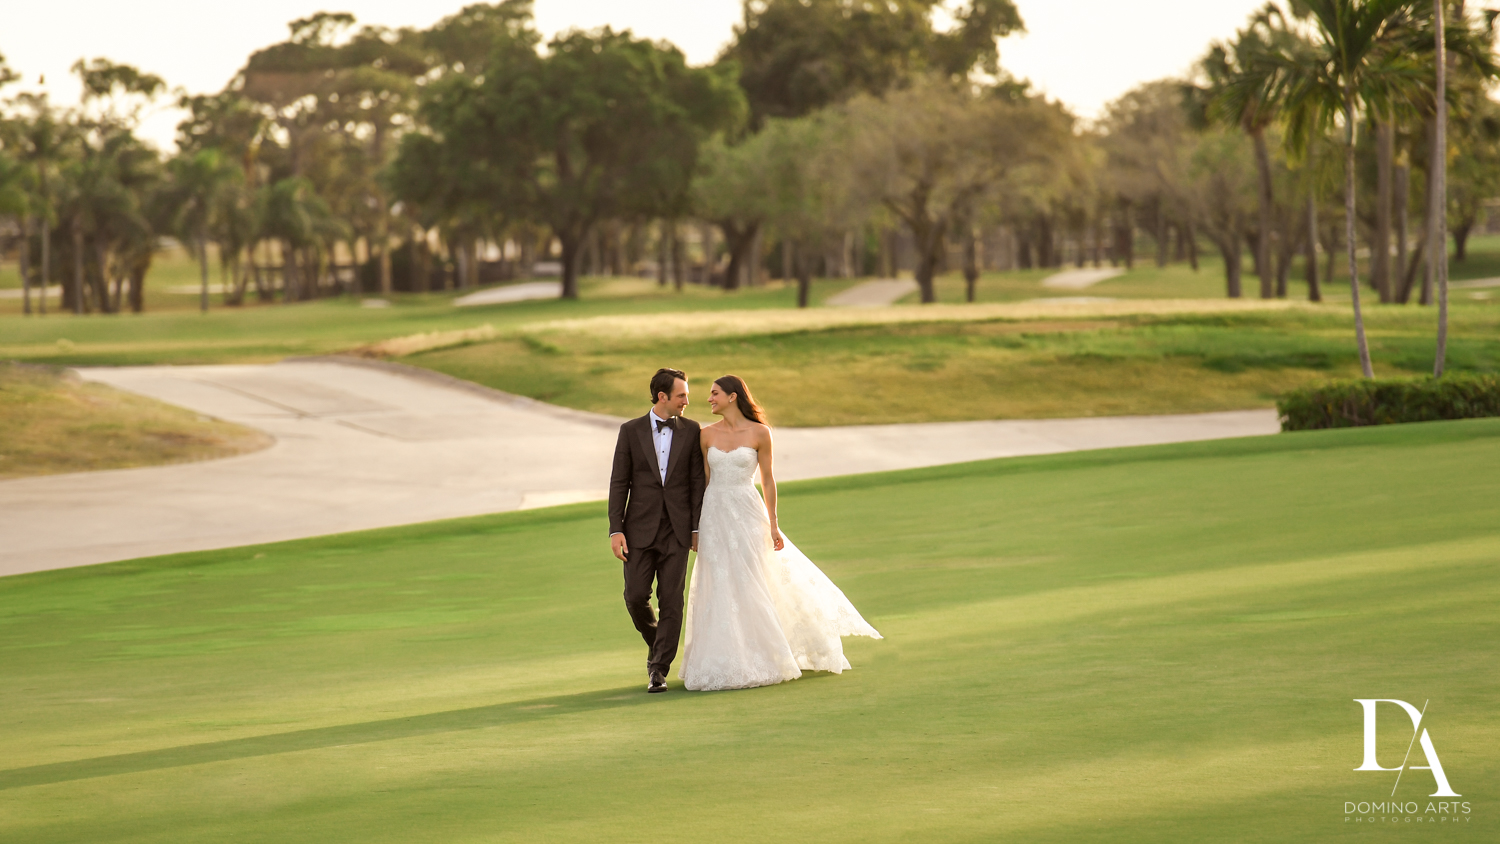 Sunset at Stunning Golf Course Wedding at PGA National Palm Beach by Domino Arts Photography